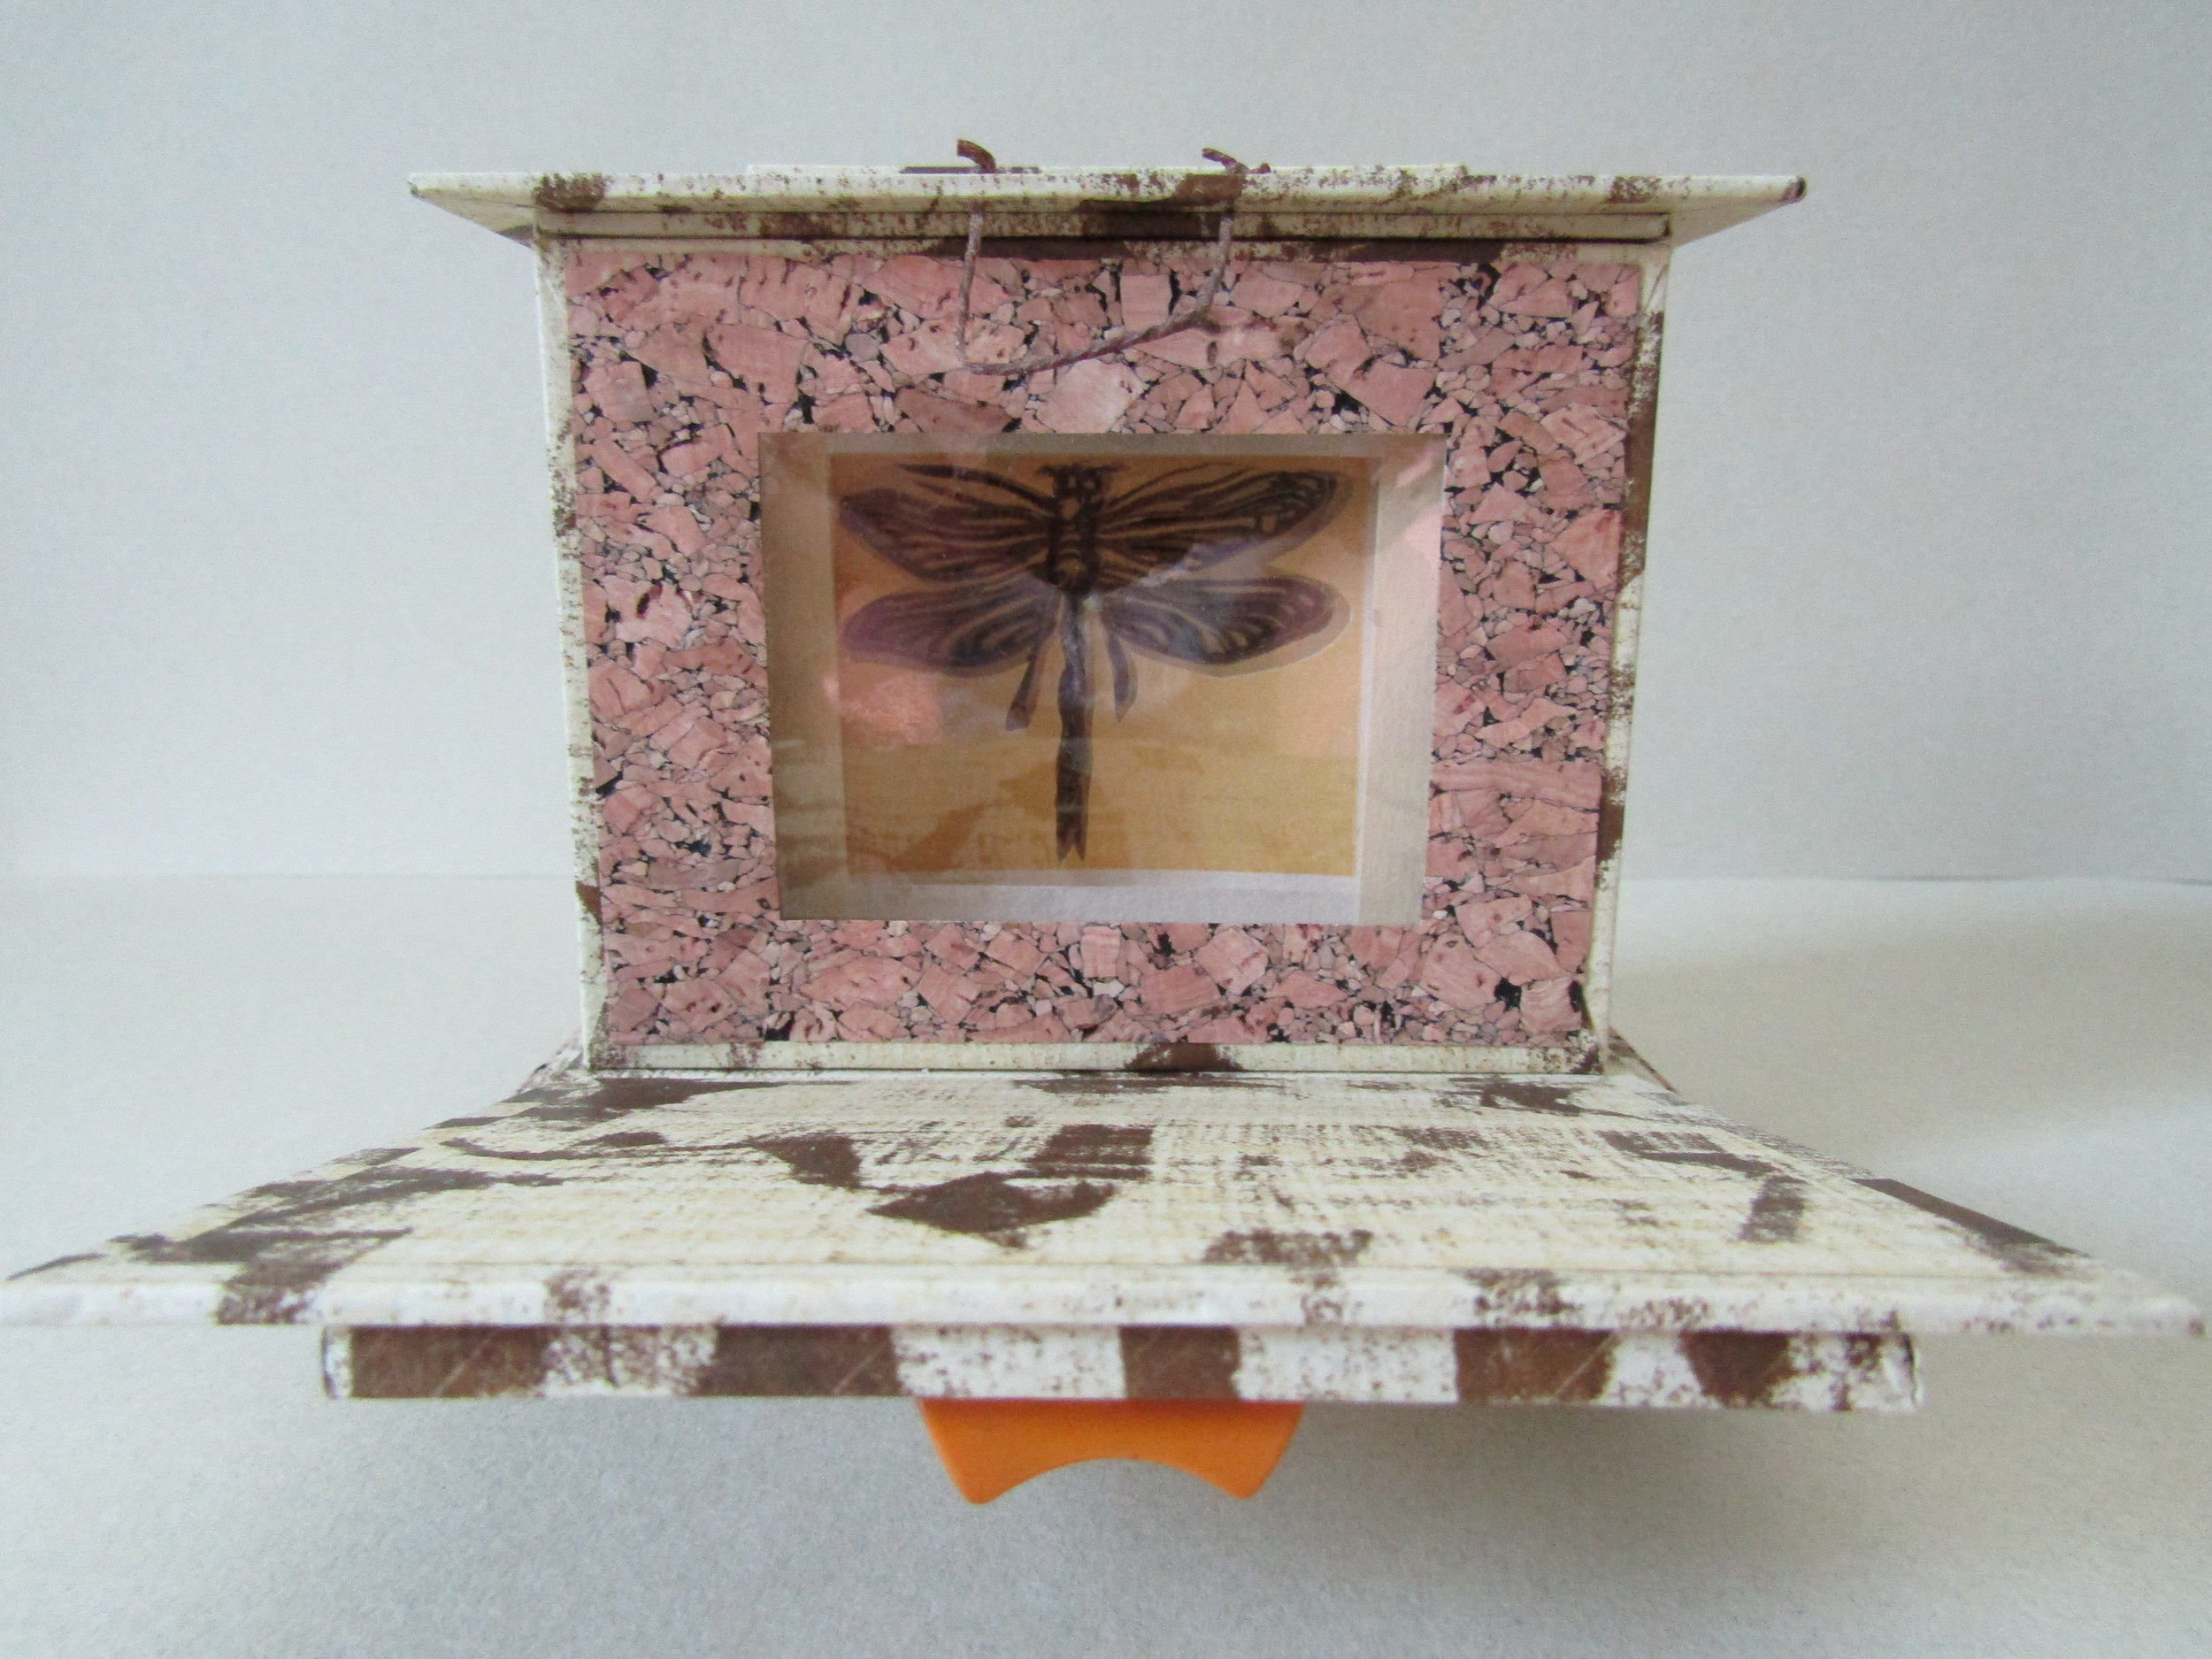 Dragonfly reliquary with the door opened.